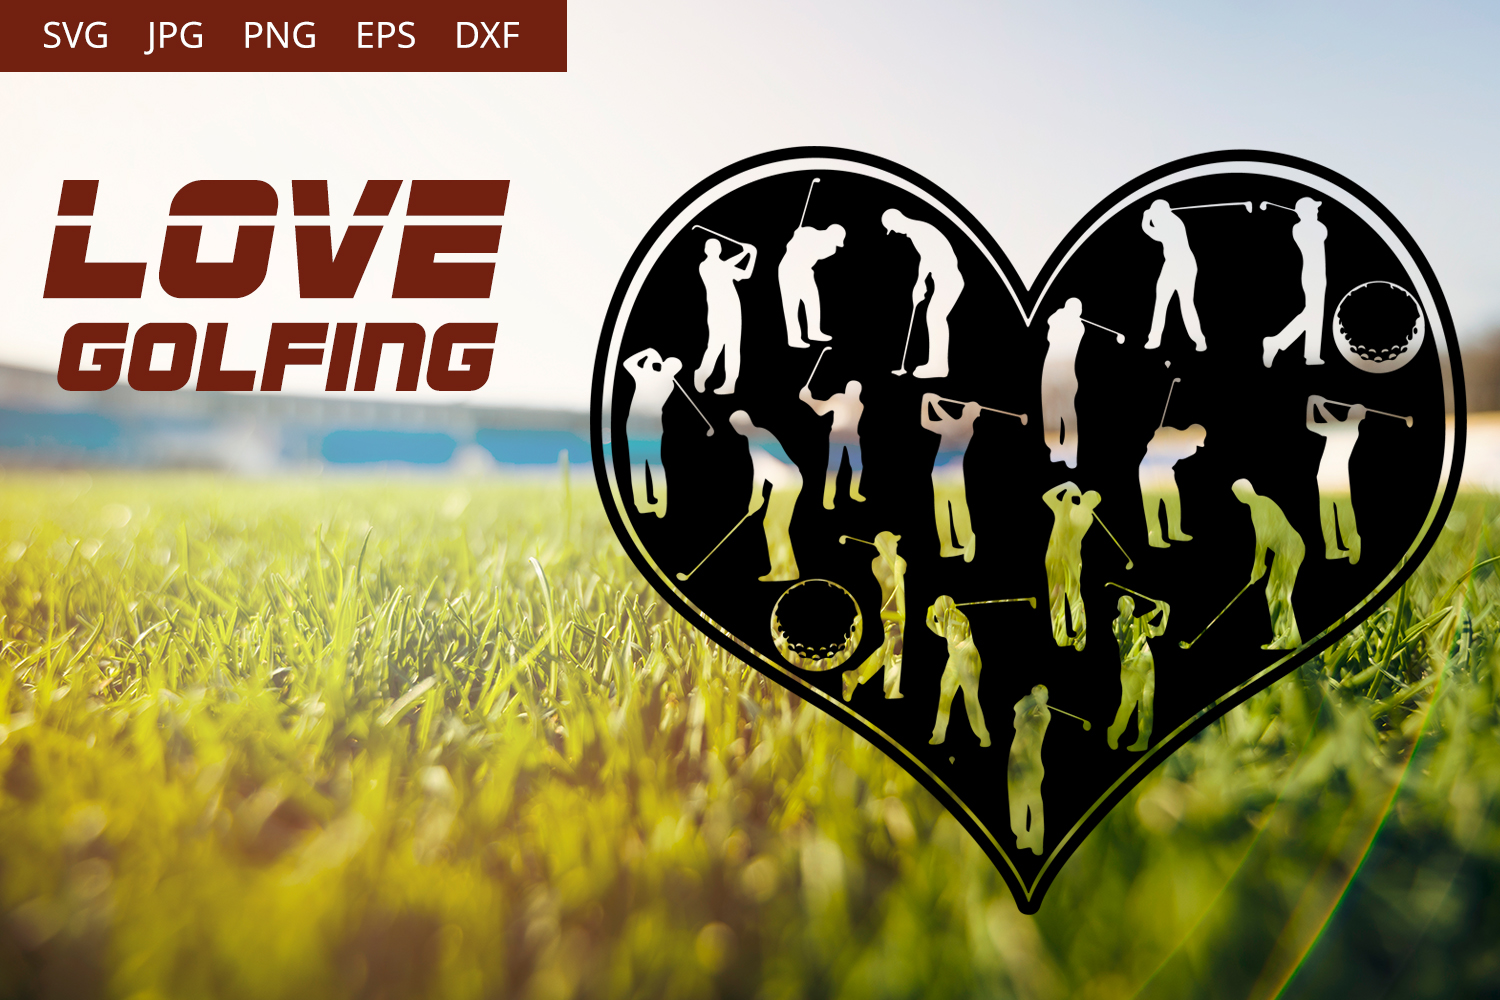 Love Golfing SVG Vector example image 1